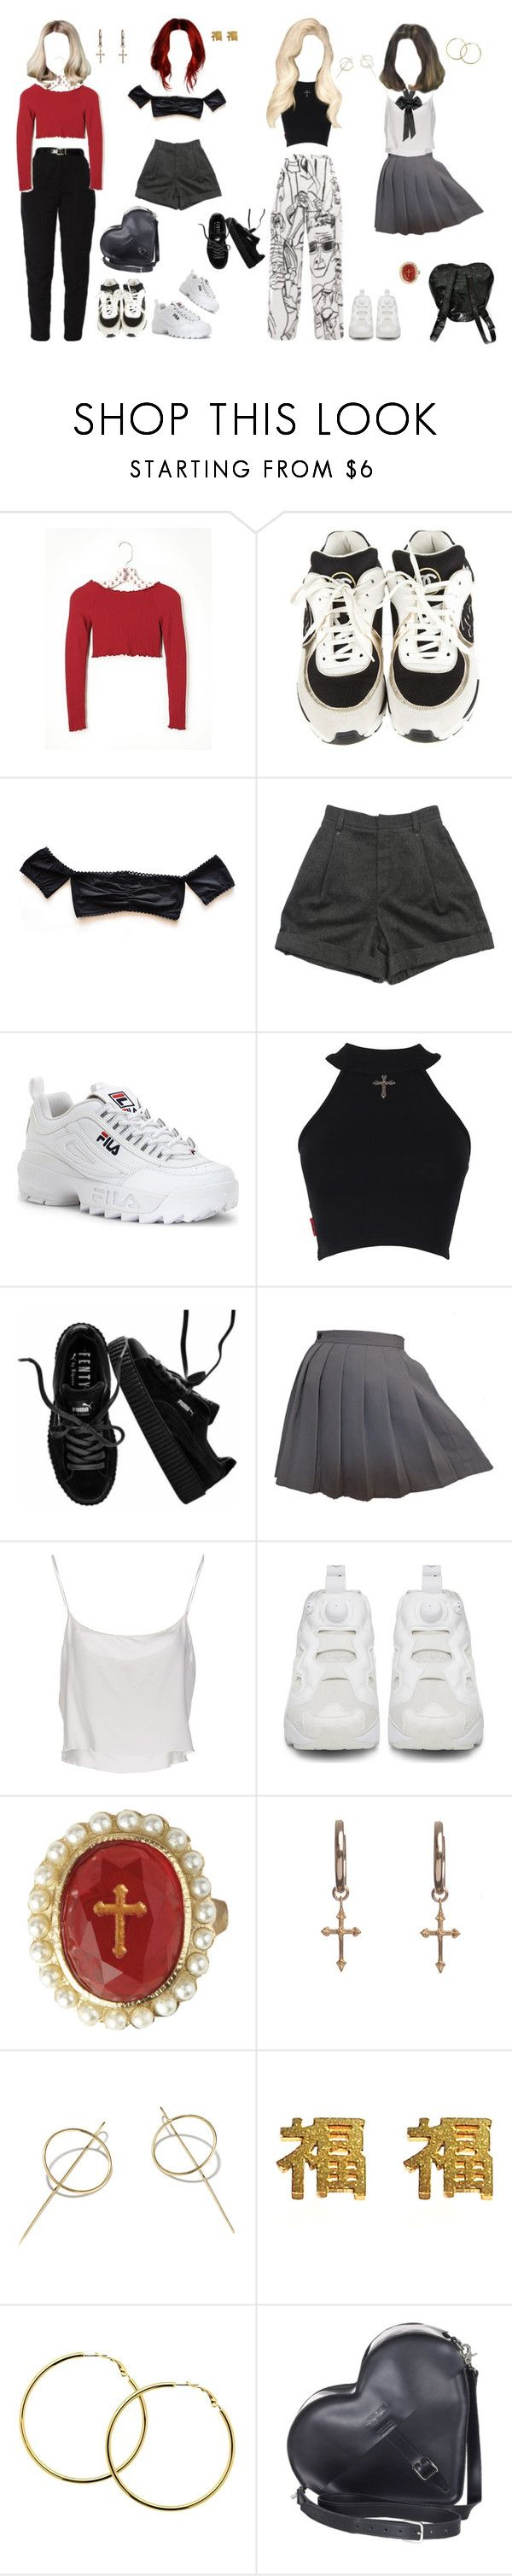 """????"" by caffeinecold ❤ liked on Polyvore featuring Free People, Chanel, OneTeaspoon, Chloé, Fila, Puma, COS, Jean-Paul Gaultier, Reebok and H&M"